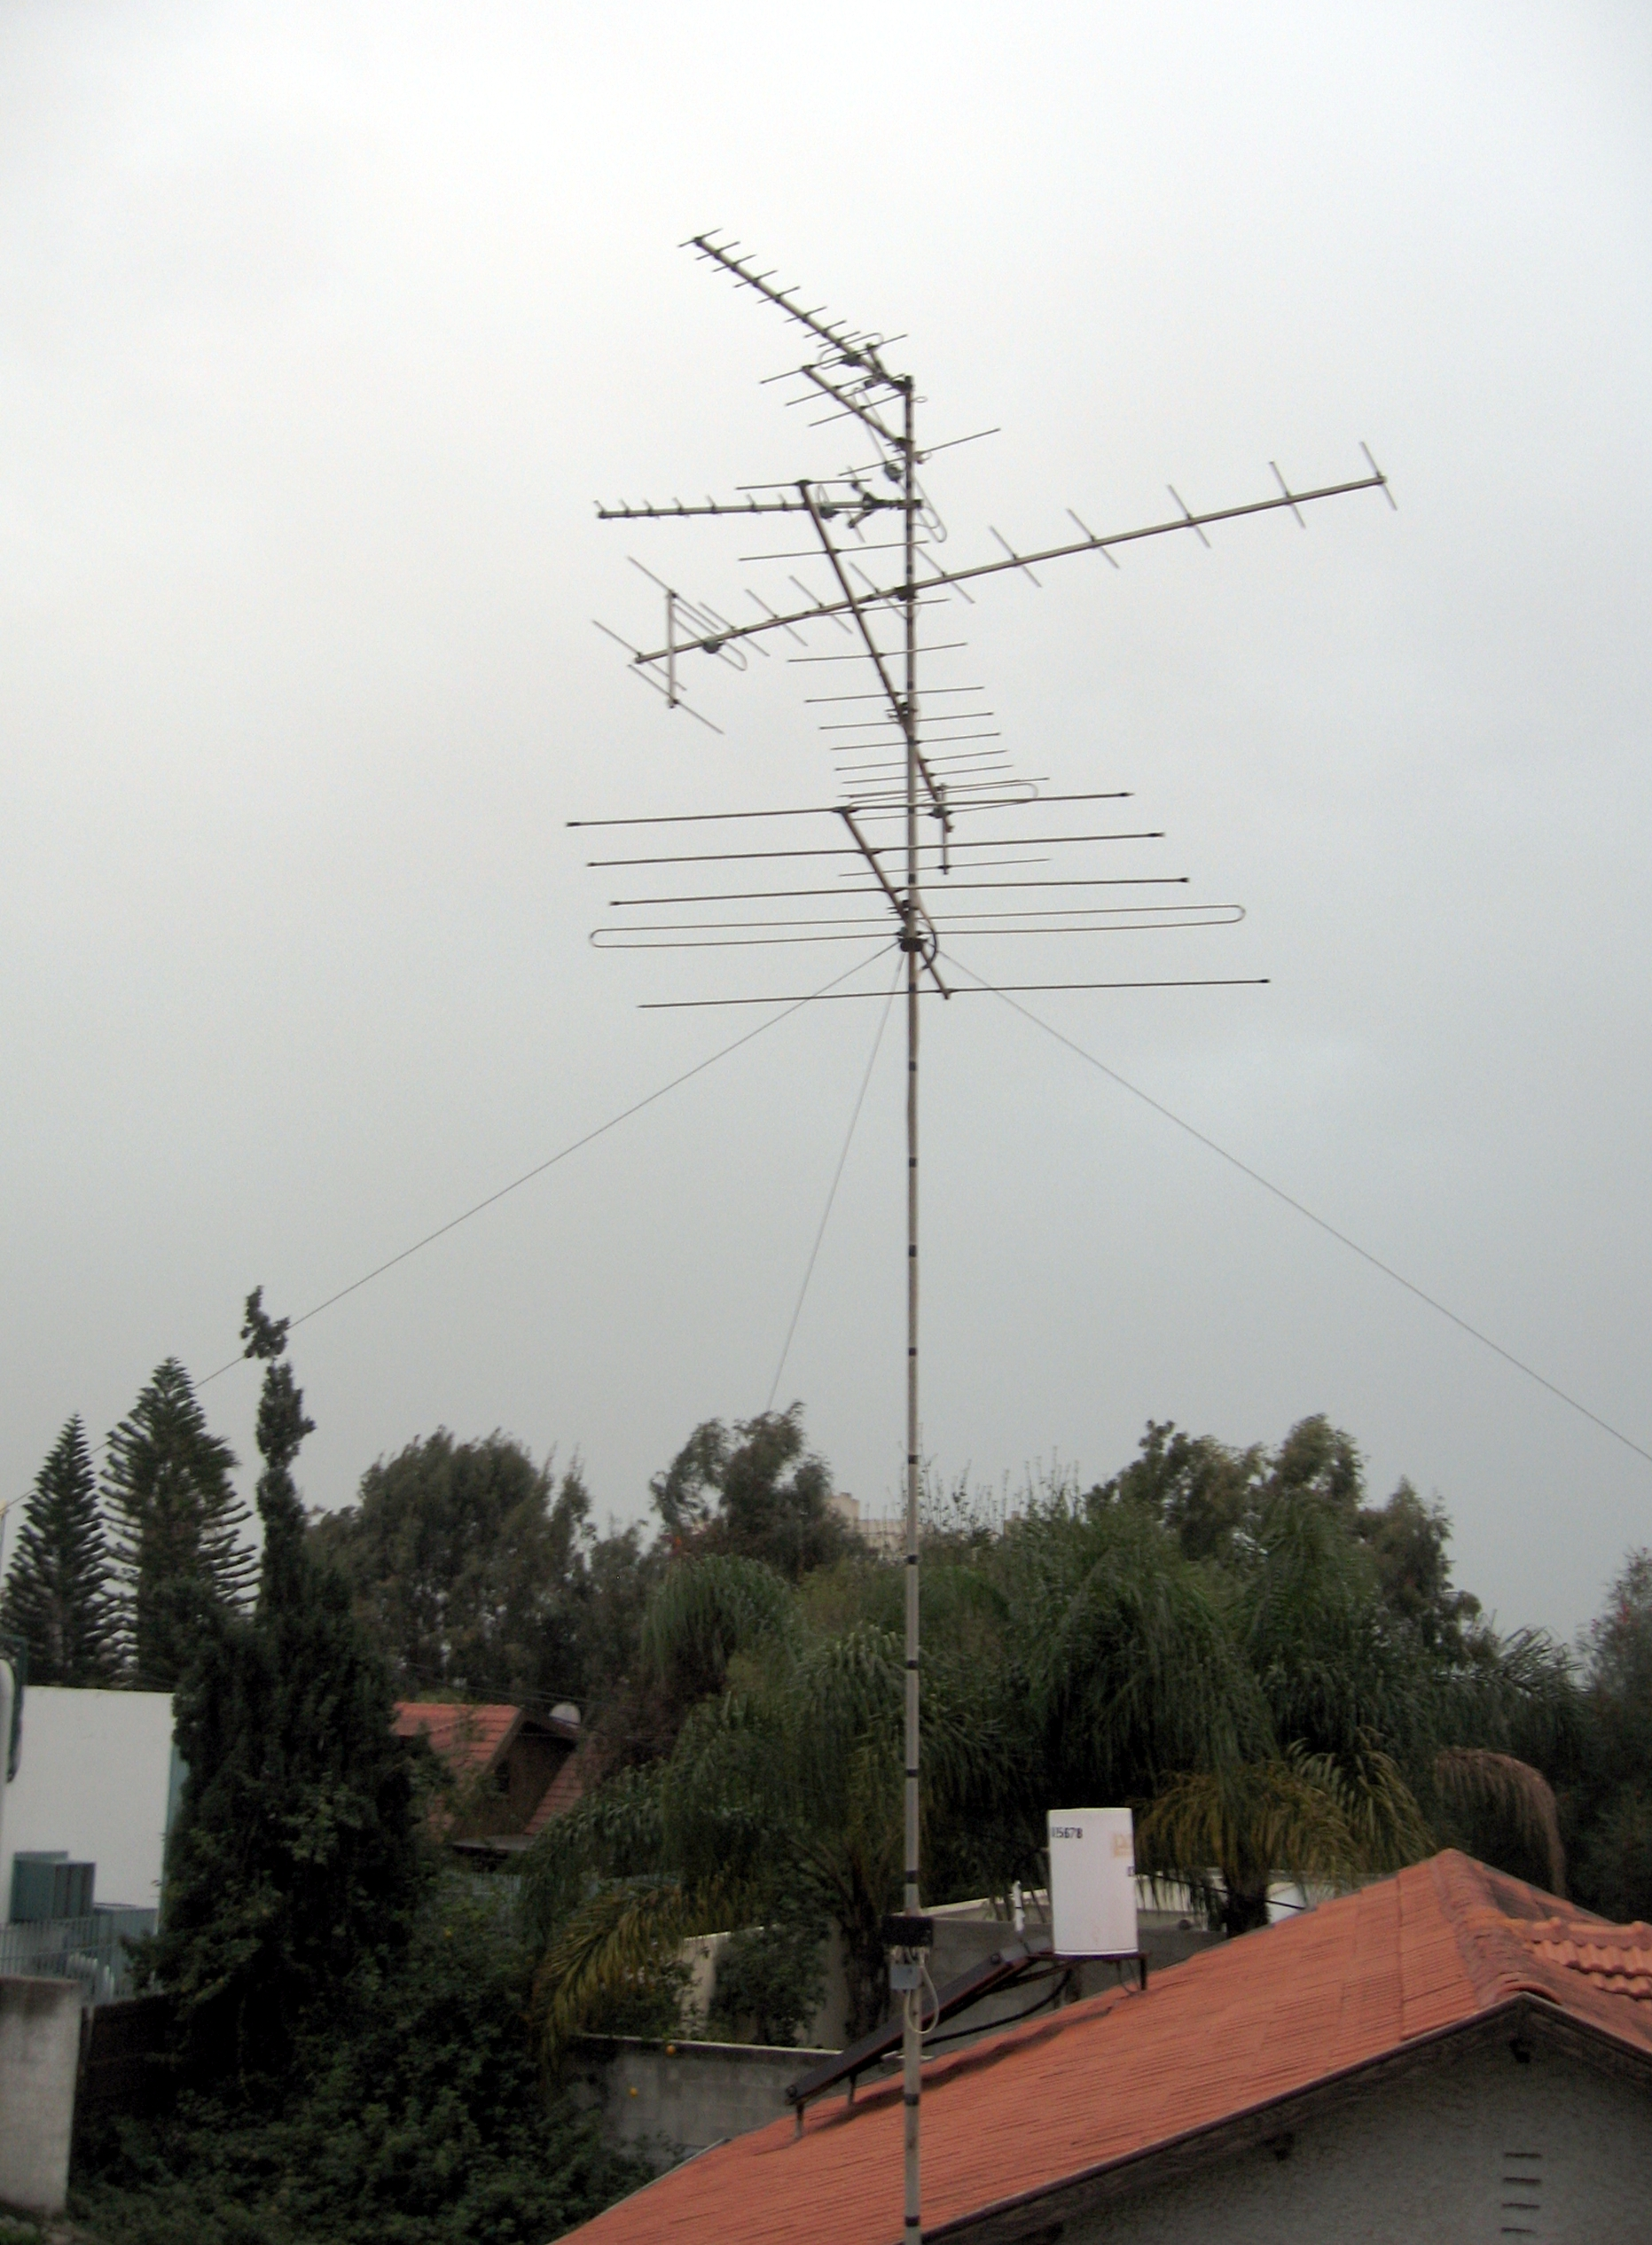 Rooftop television Yagi-Uda antennas like these are widely used at VHF and UHF frequencies.